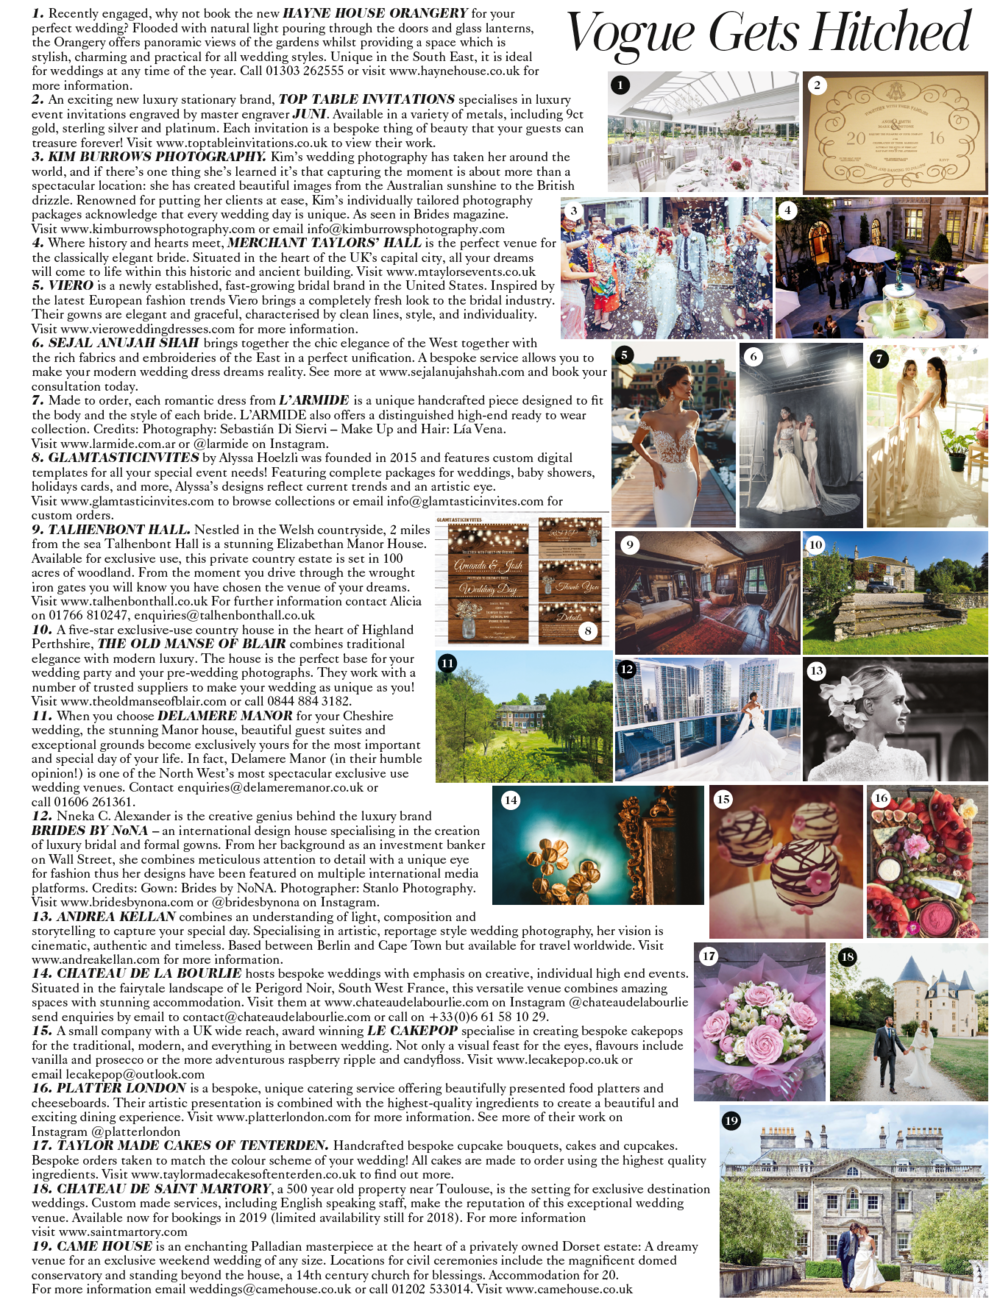 363 Vogue Gets Hitched.png